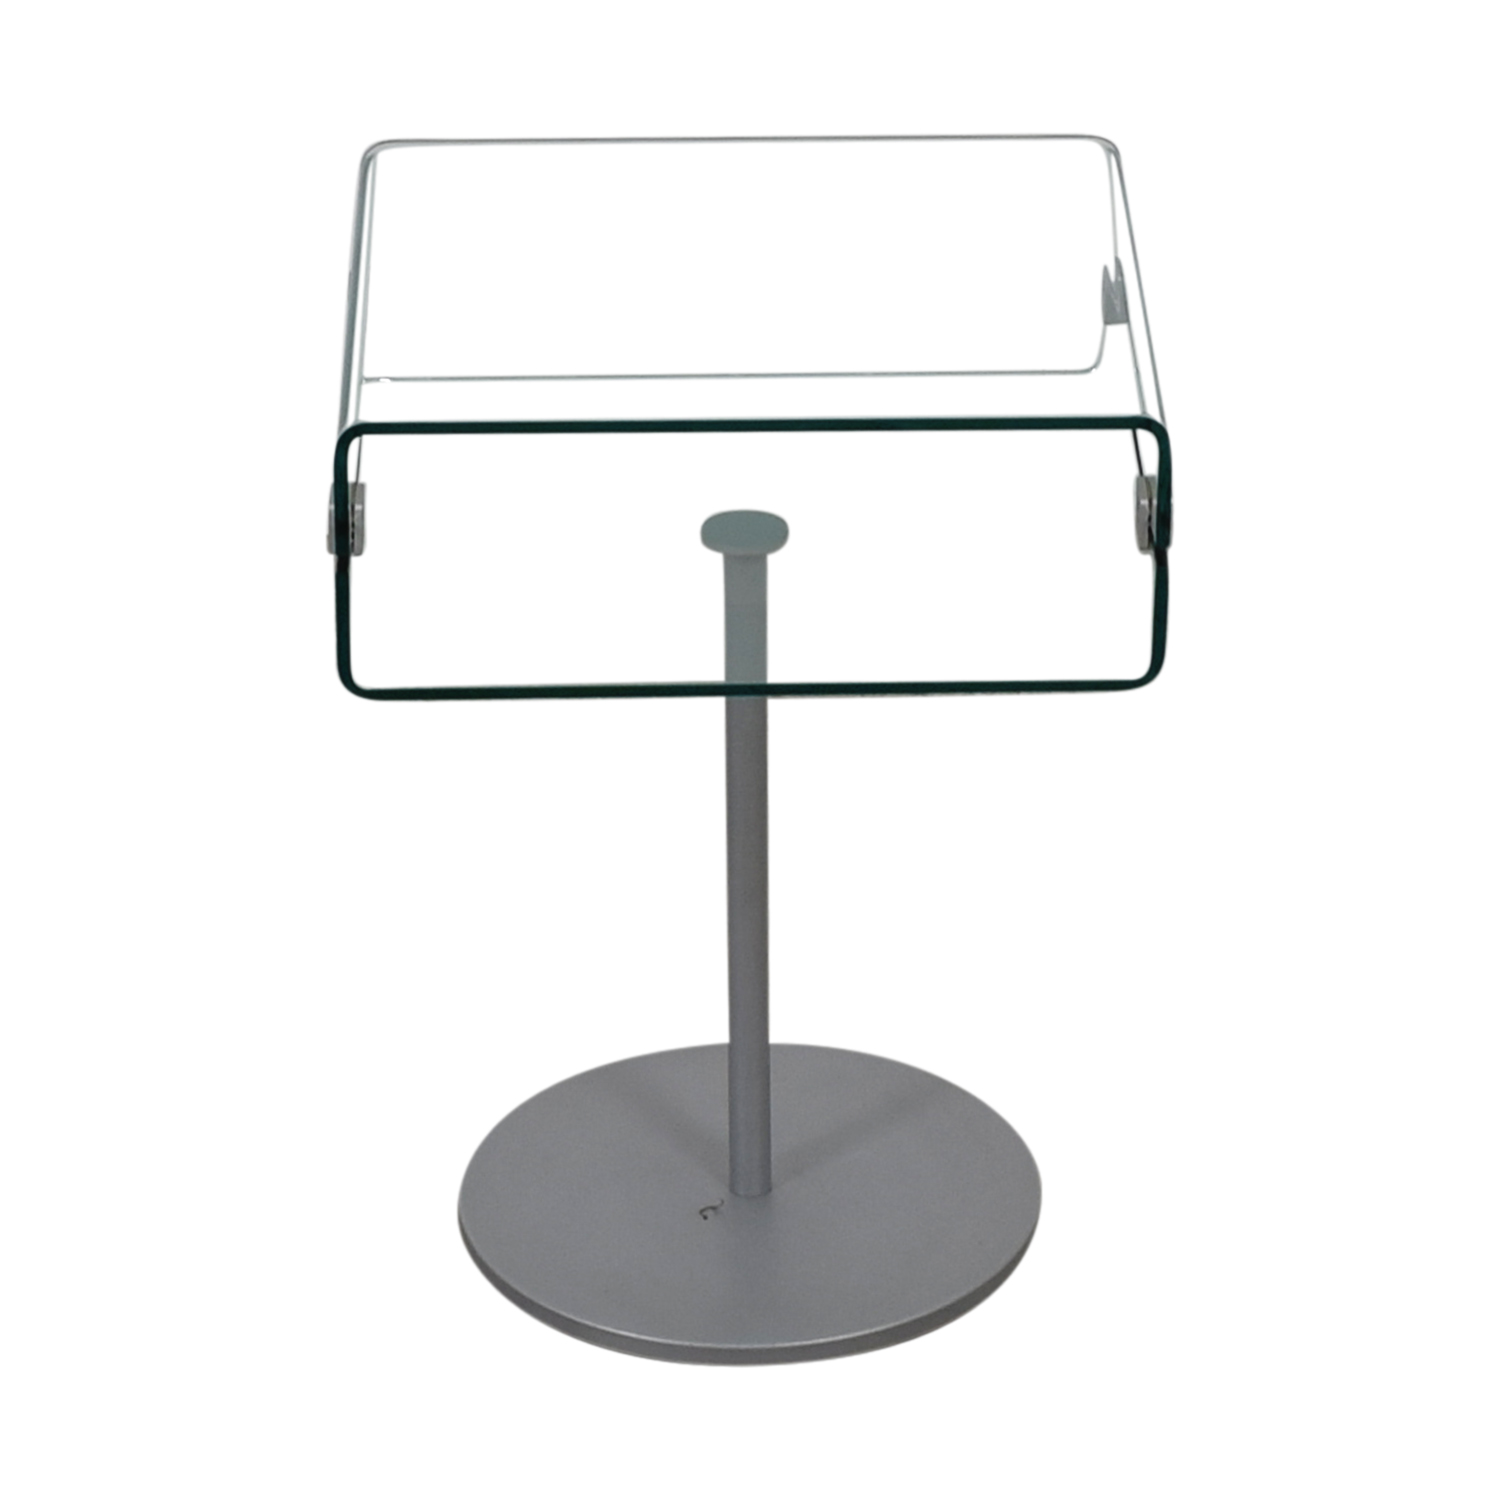 SEE Italian Furniture SEE Italian Furniture Glass Nightstand on sale